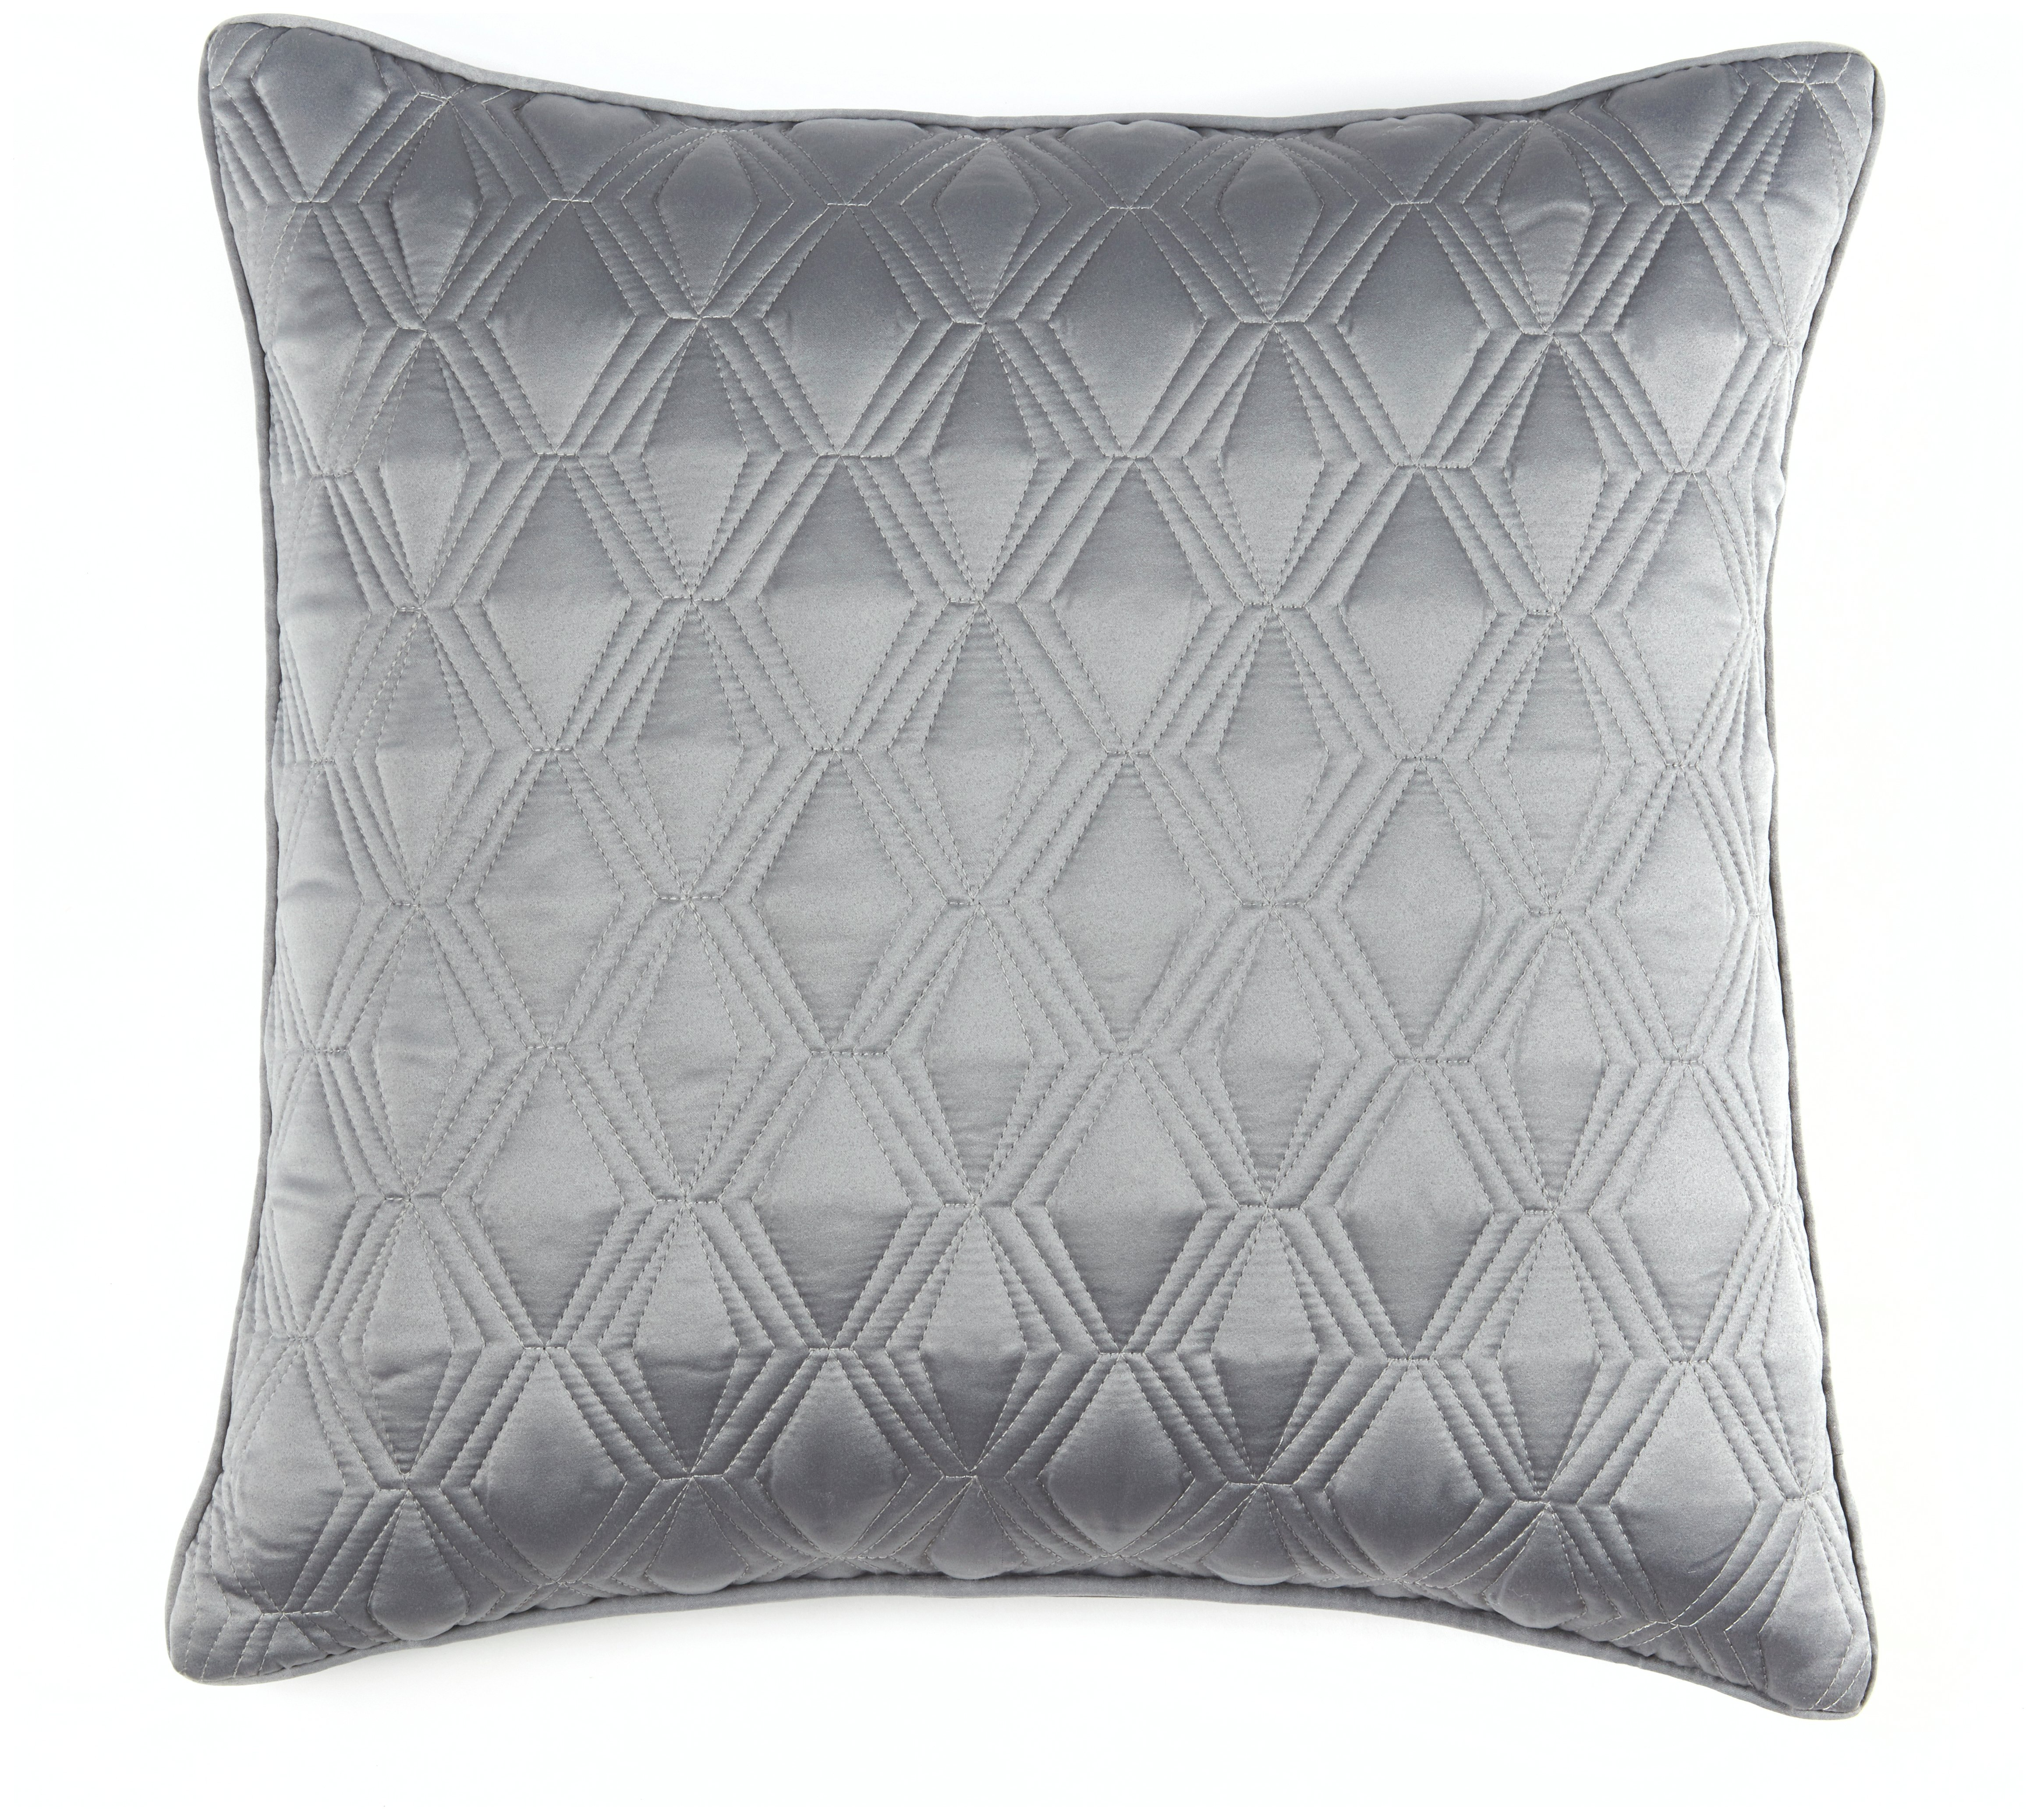 julian charles blossom quilted cushion silver gay. Black Bedroom Furniture Sets. Home Design Ideas